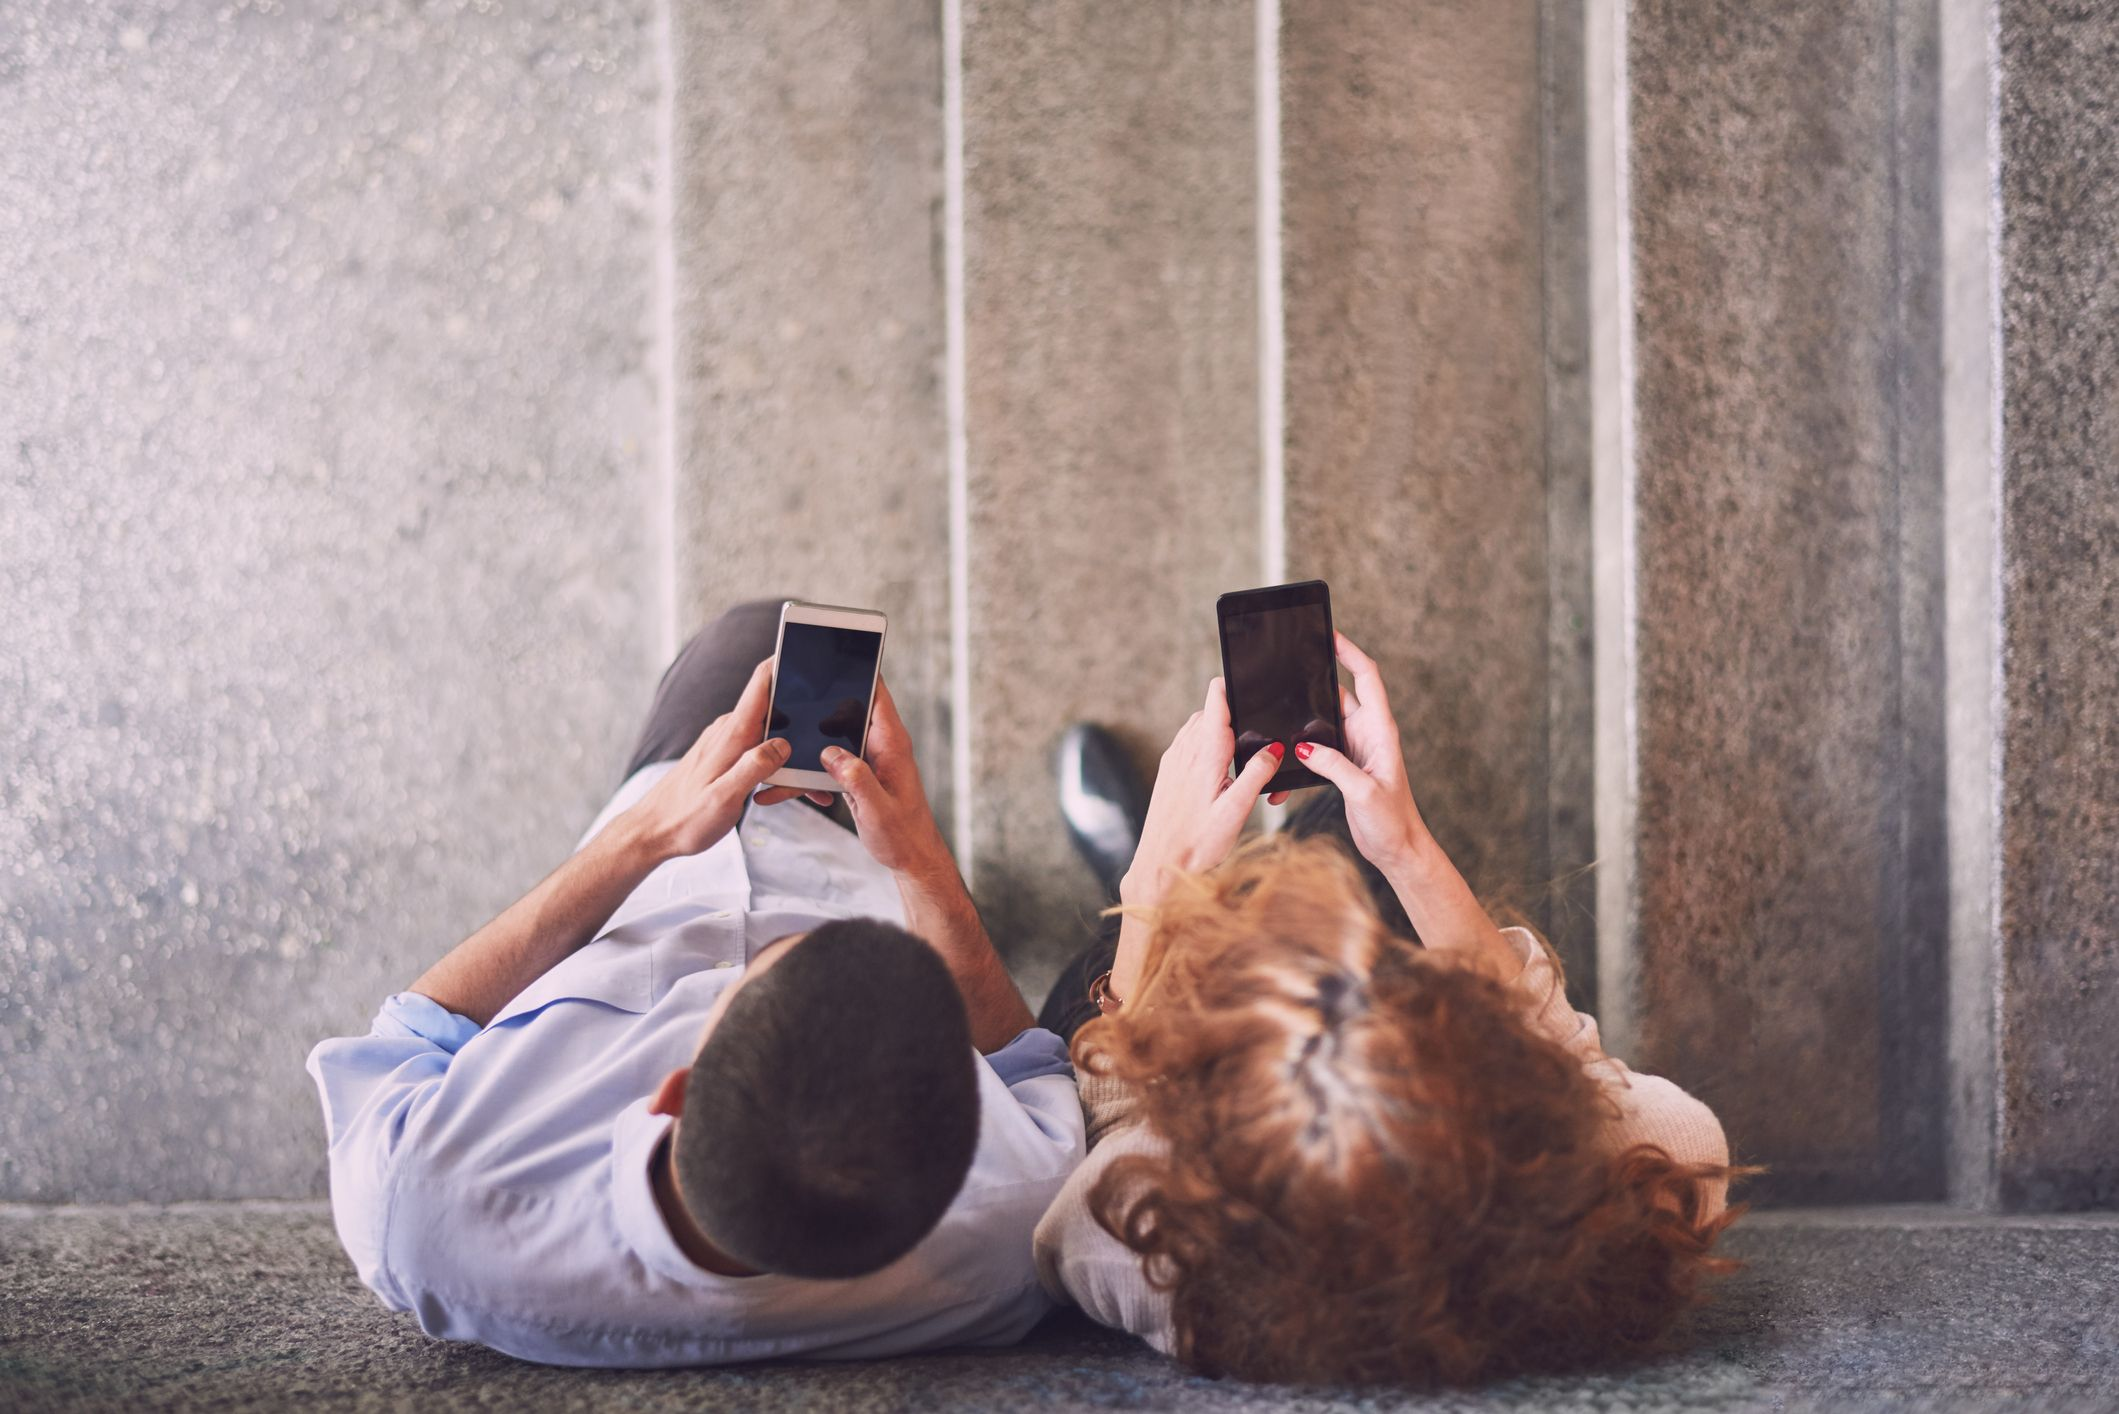 Cell Phone Addiction May Cause 'Horns' to Grown on Skulls